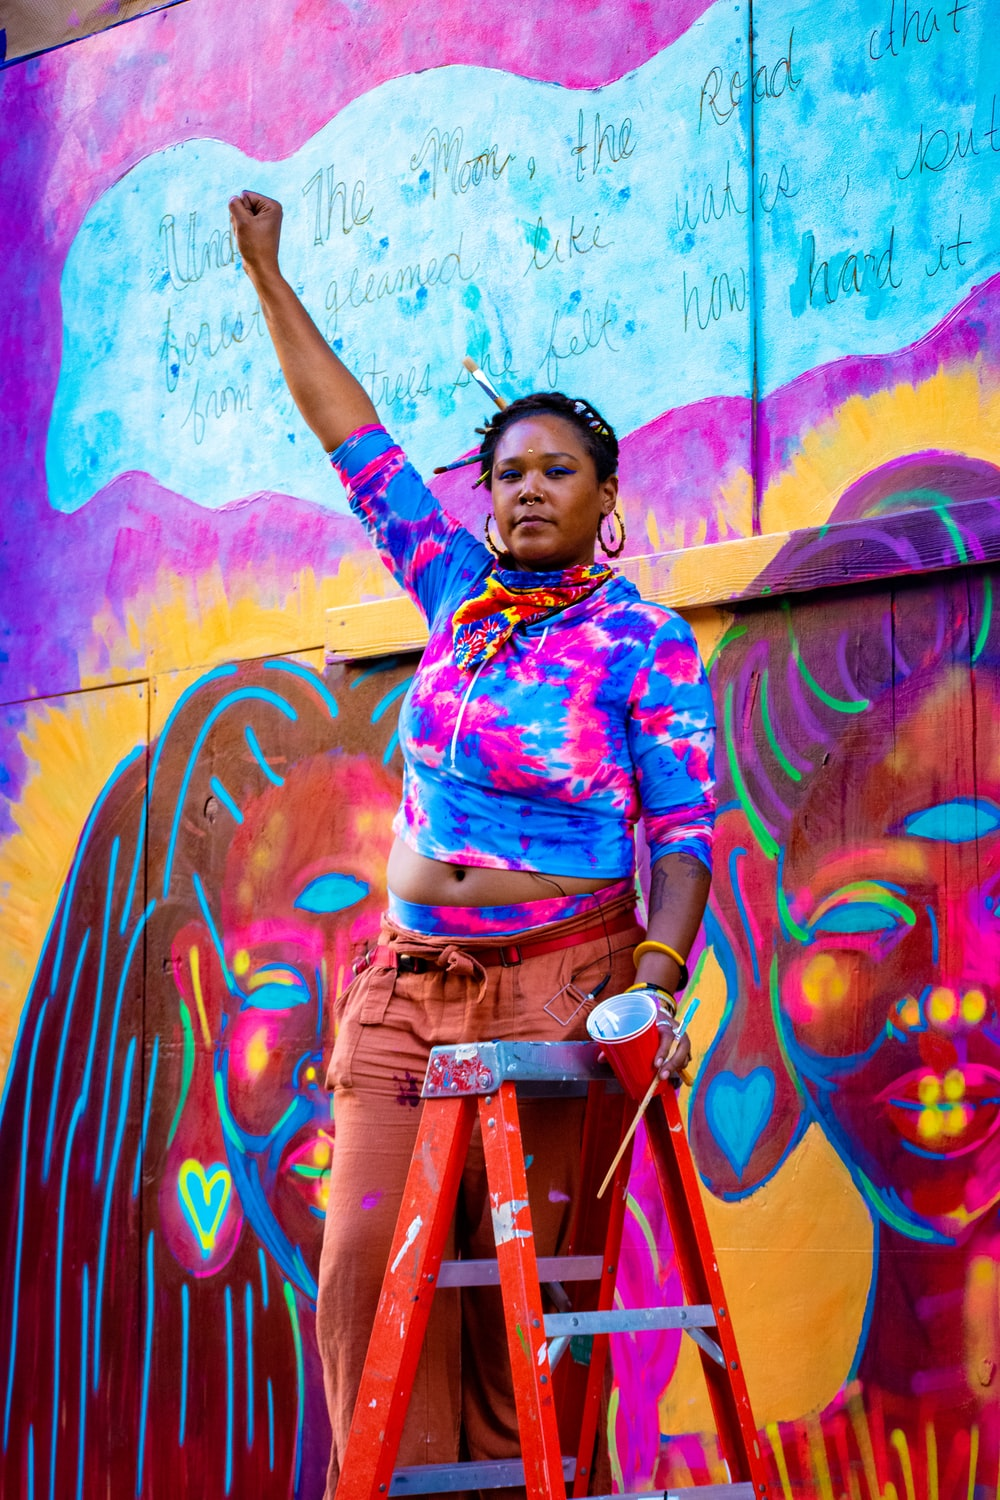 woman in blue and pink floral button up shirt and brown pants standing beside graffiti wall